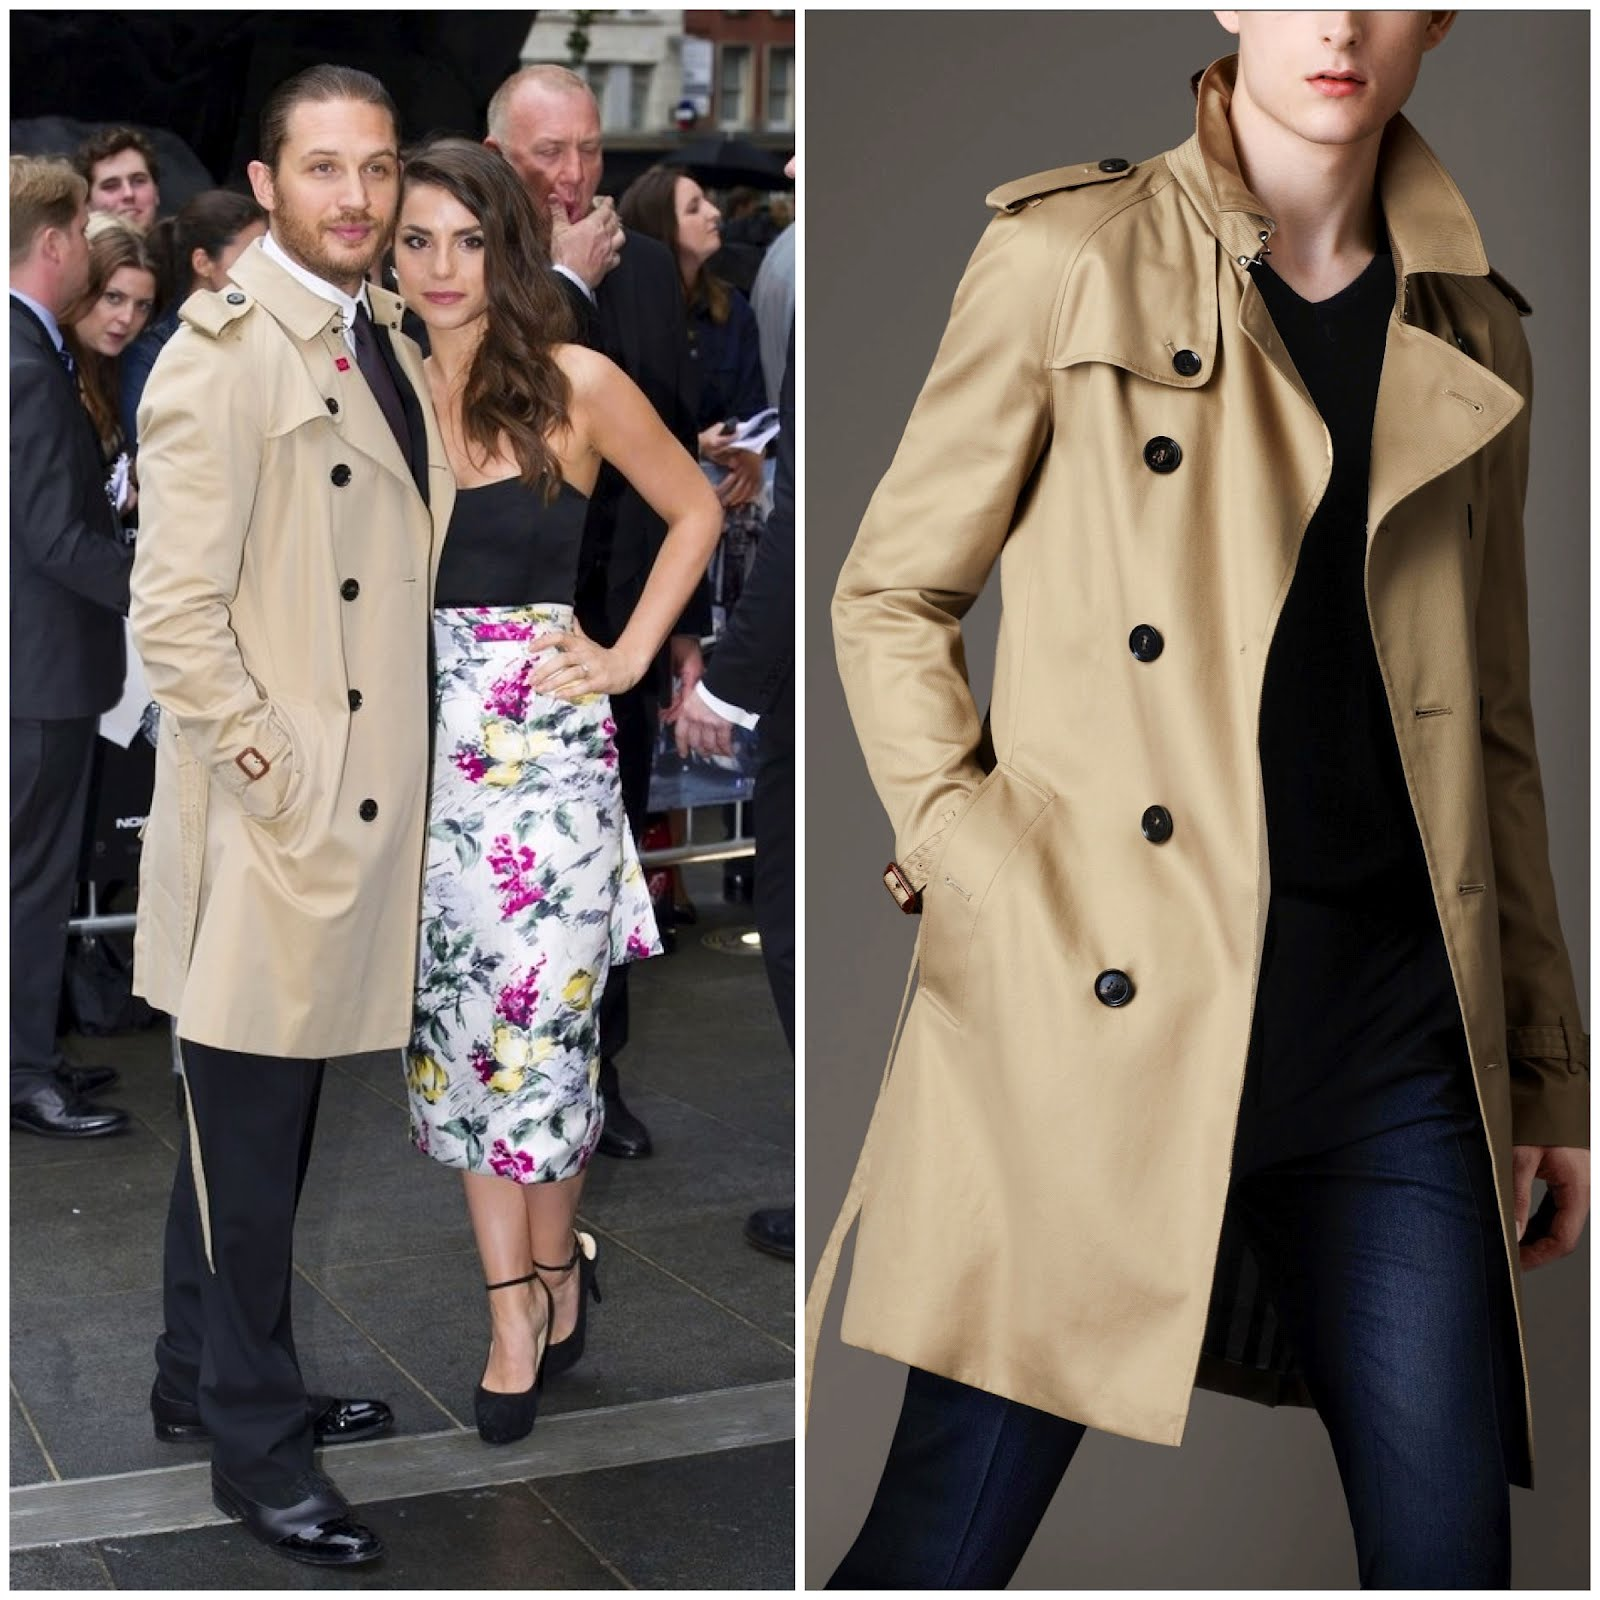 00O00 London Menswear Blog celebrity style Tom Hardy in Burberry London trench coat Dark Knight Rises European premiere at Odean Leicester Square London Mr Porter